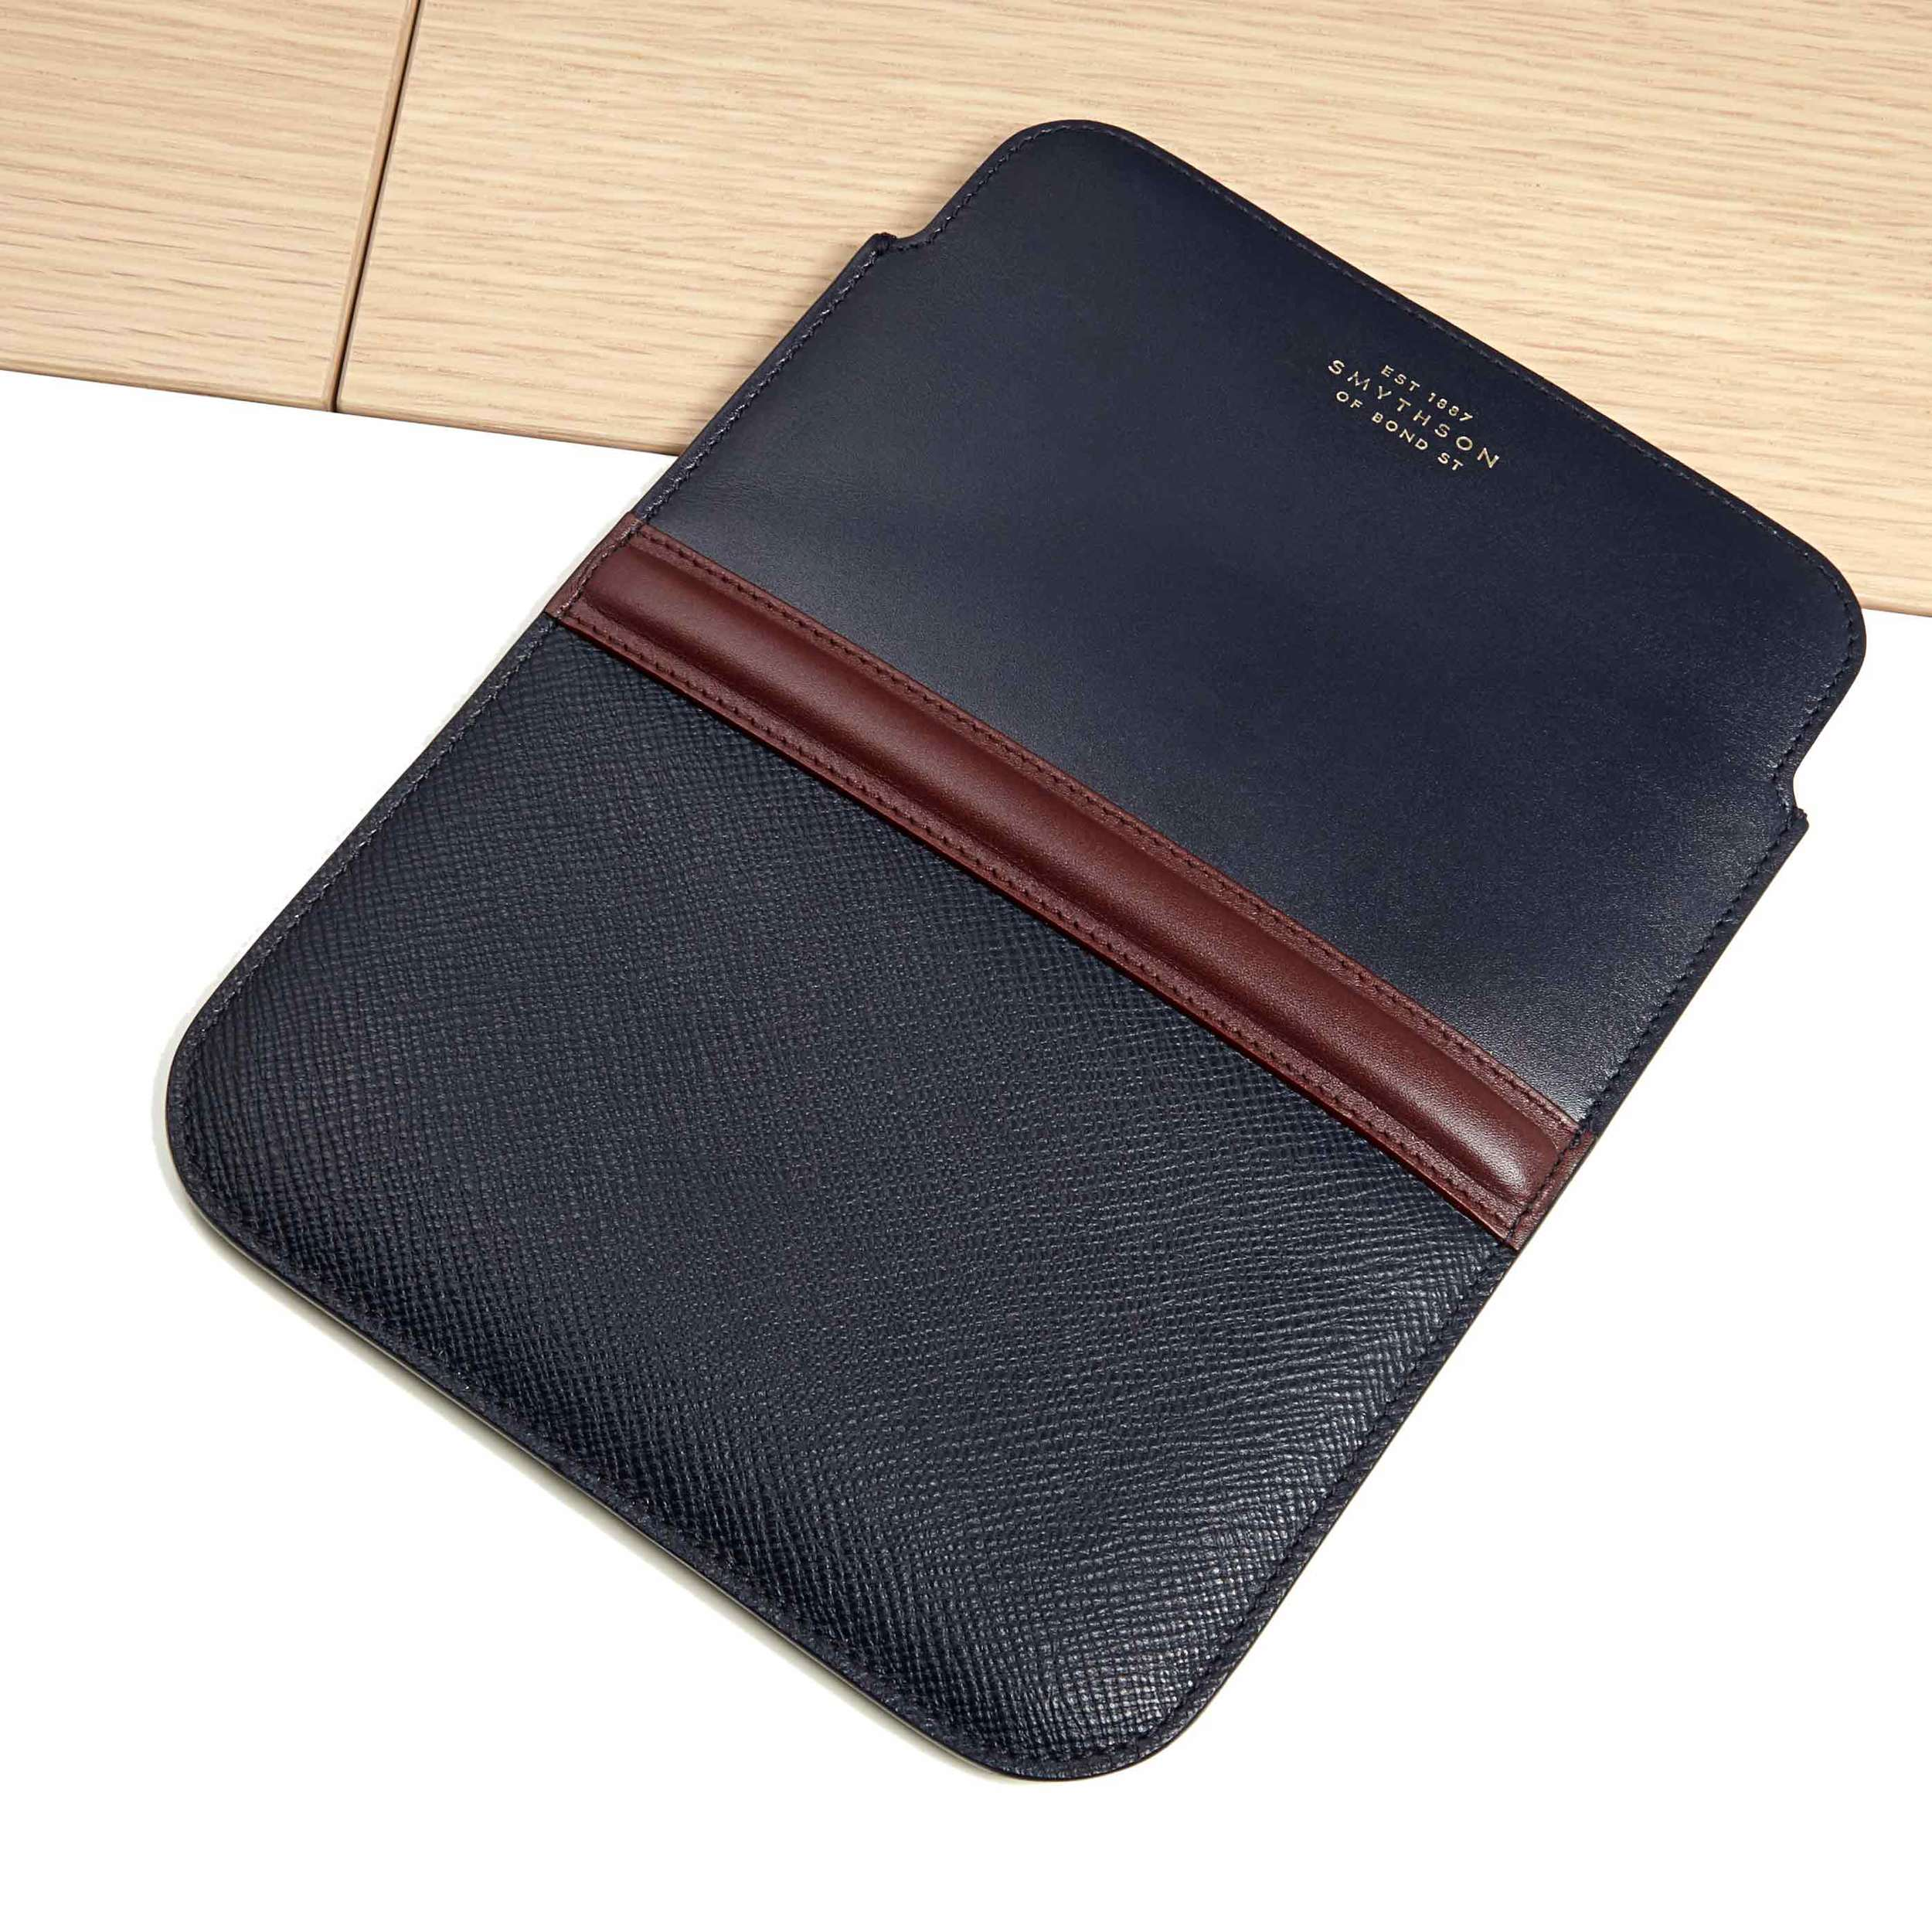 Smythson-Case-Blue.jpg